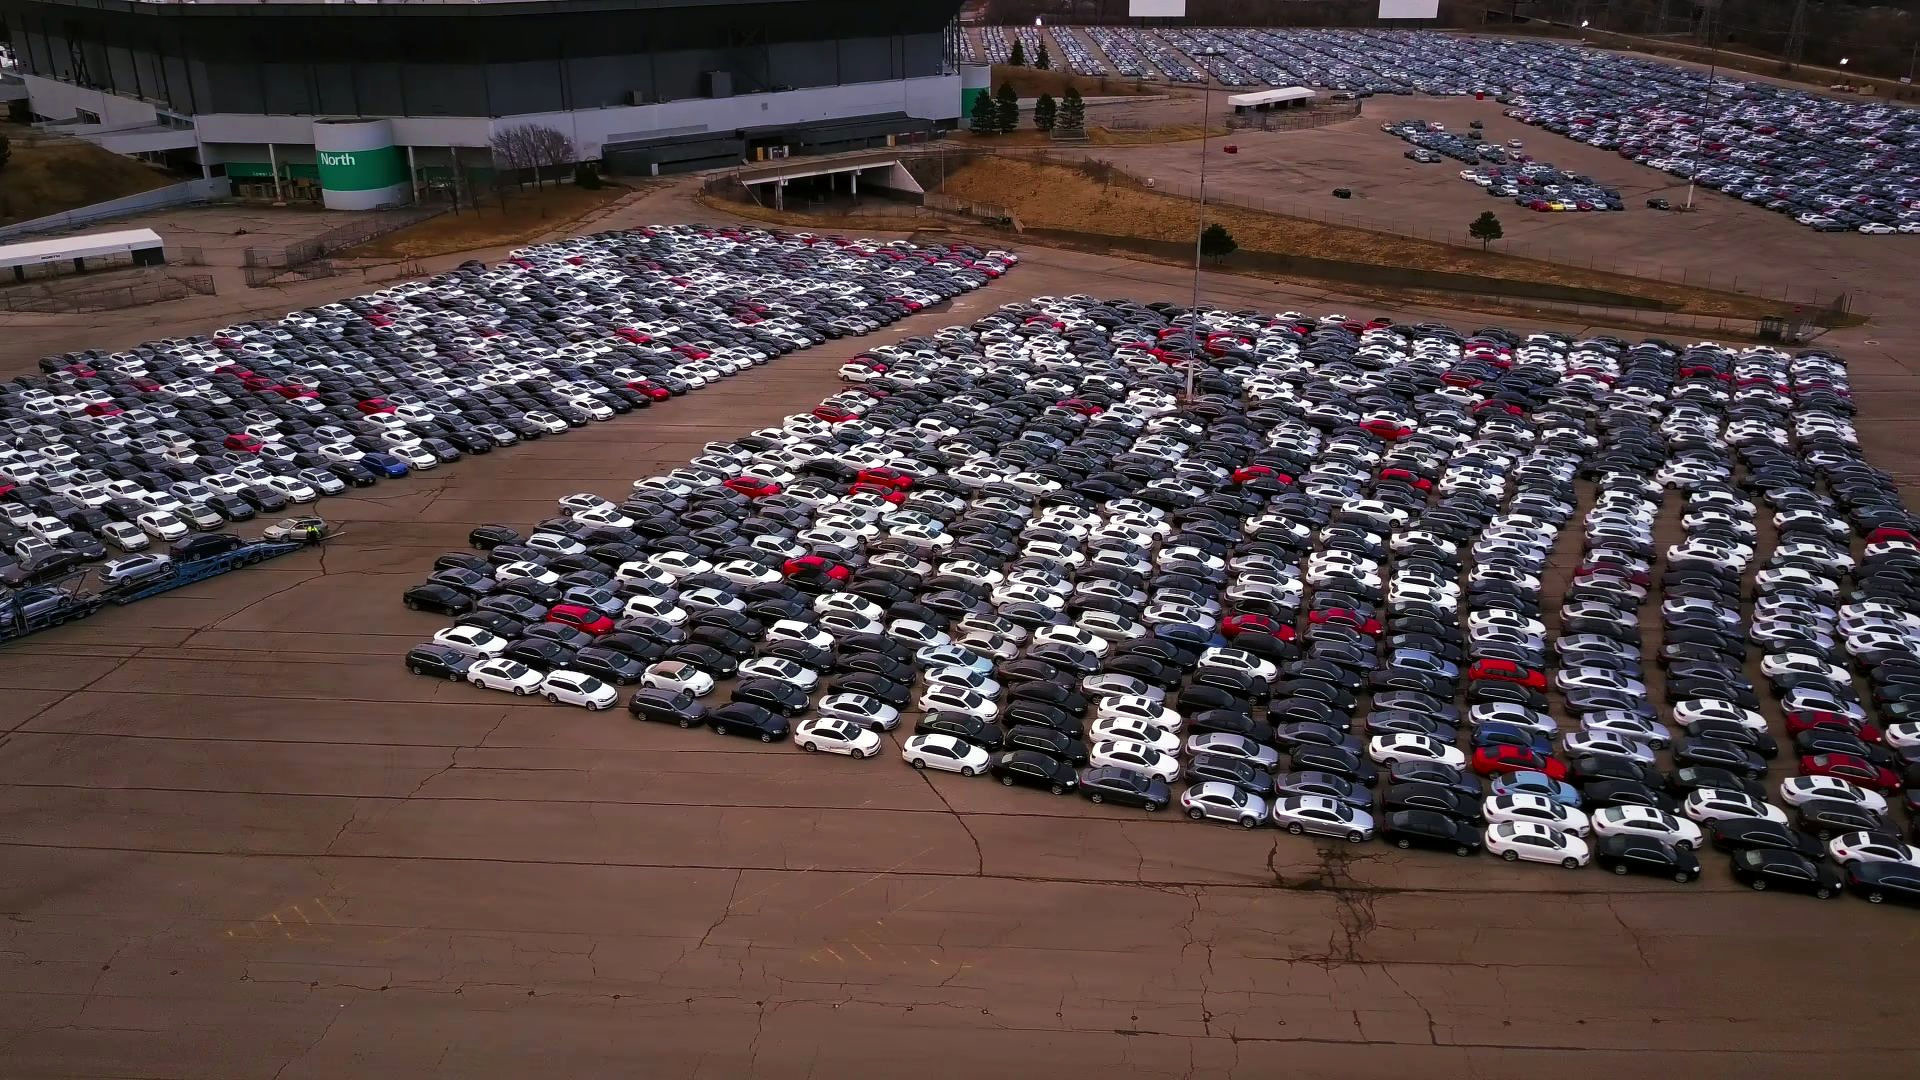 Volkswagen Diesel Buyback >> Volkswagen, Audi Cars Stolen From Dieselgate Buyback Parking Lot